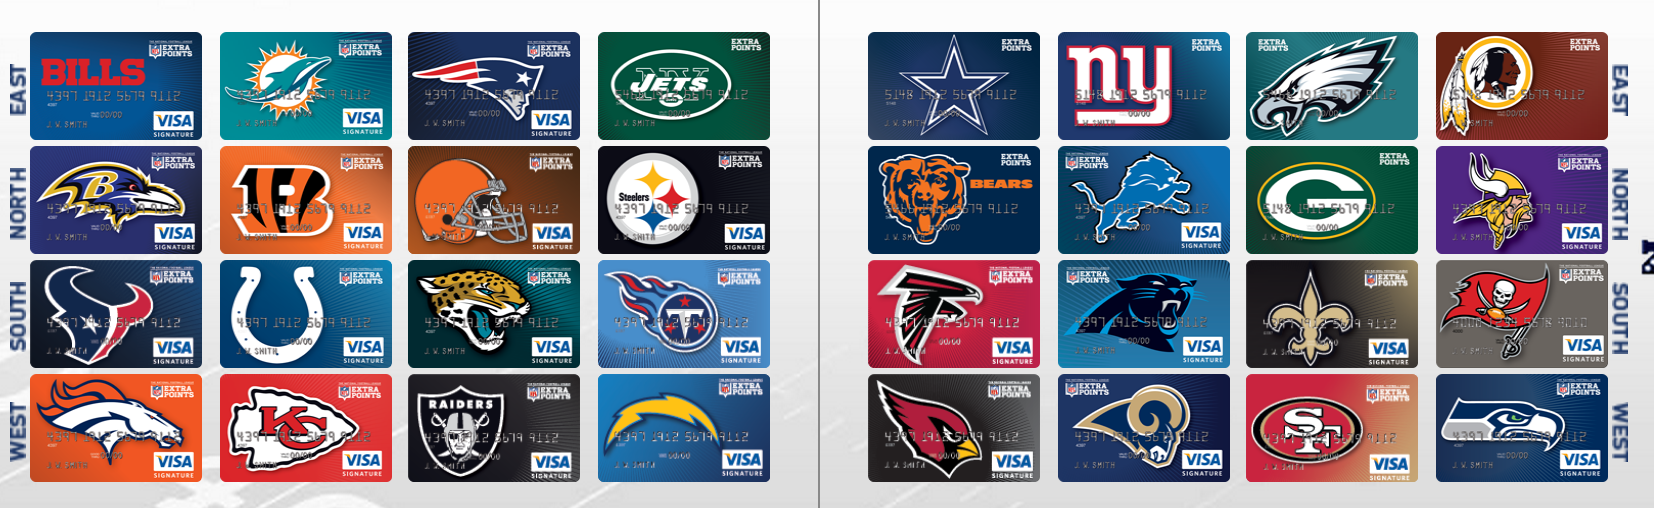 What is Barclay NFL Extra Points BIN Number? - Credit Card ...